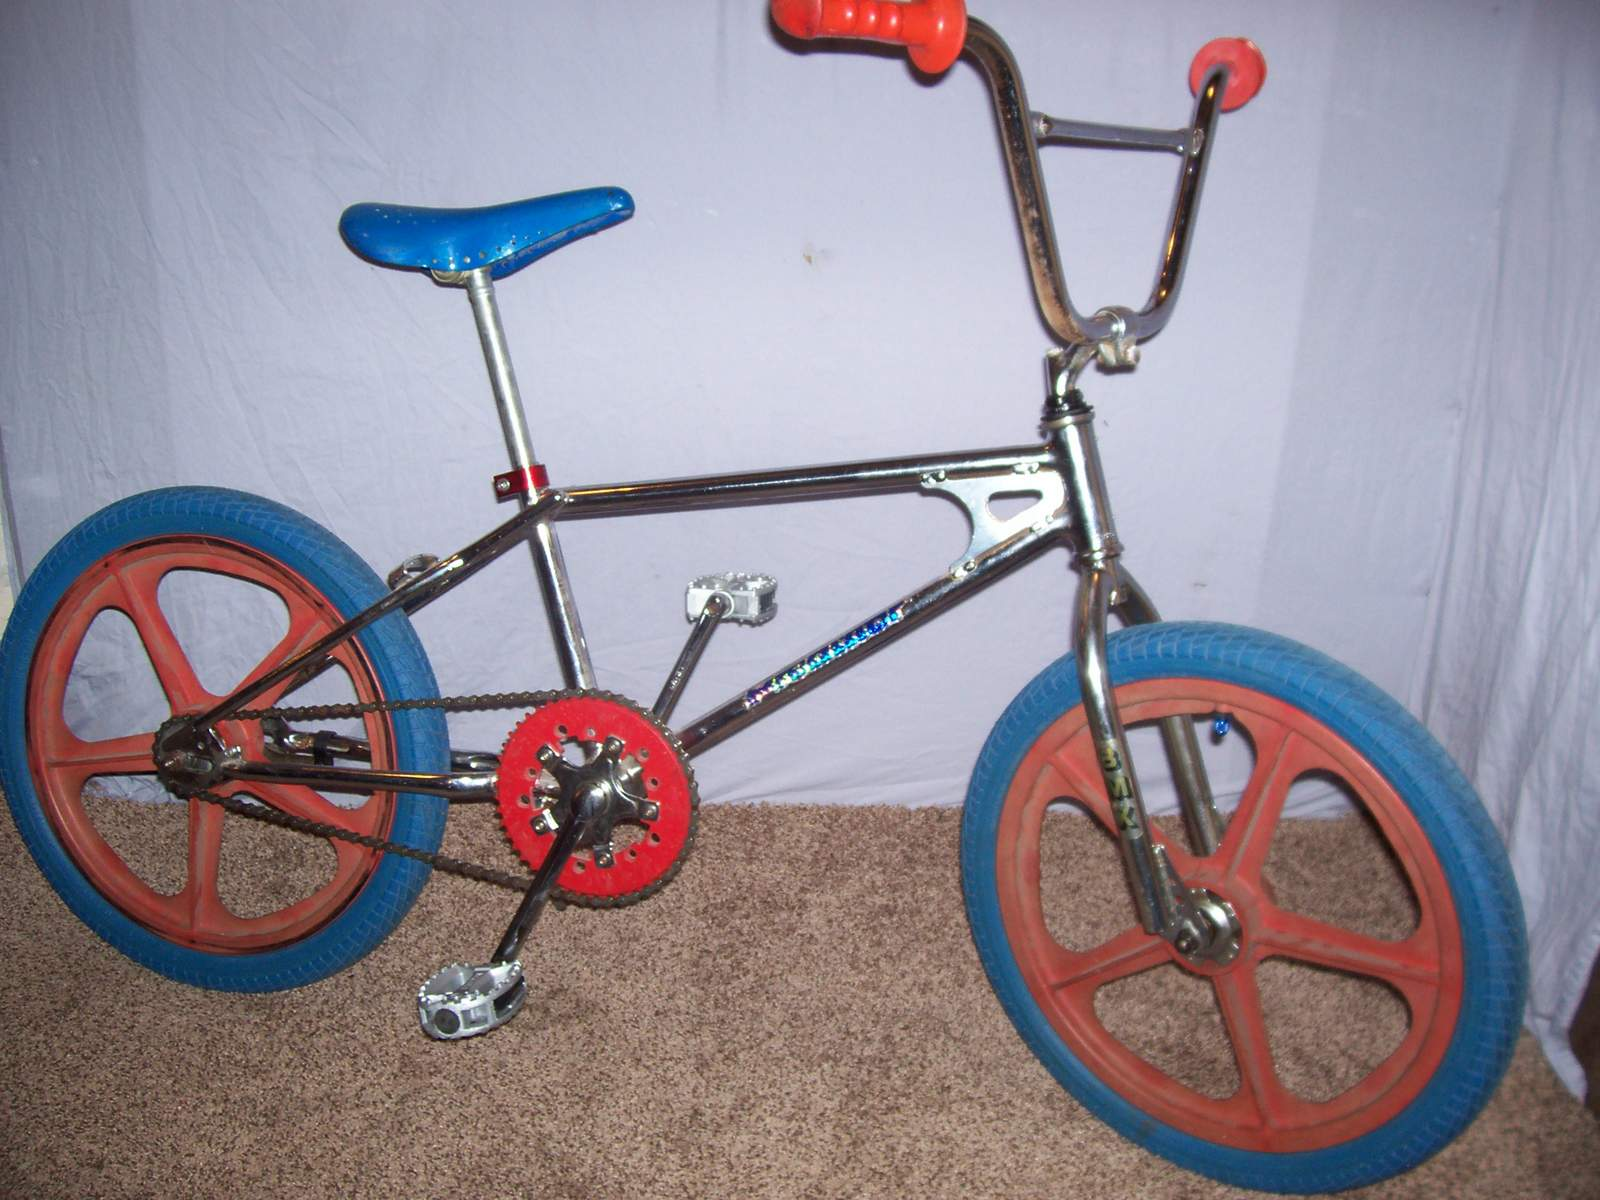 https://s3.amazonaws.com/uploads.bmxmuseum.com/user-images/61851/100_968559a538d6c3.jpg